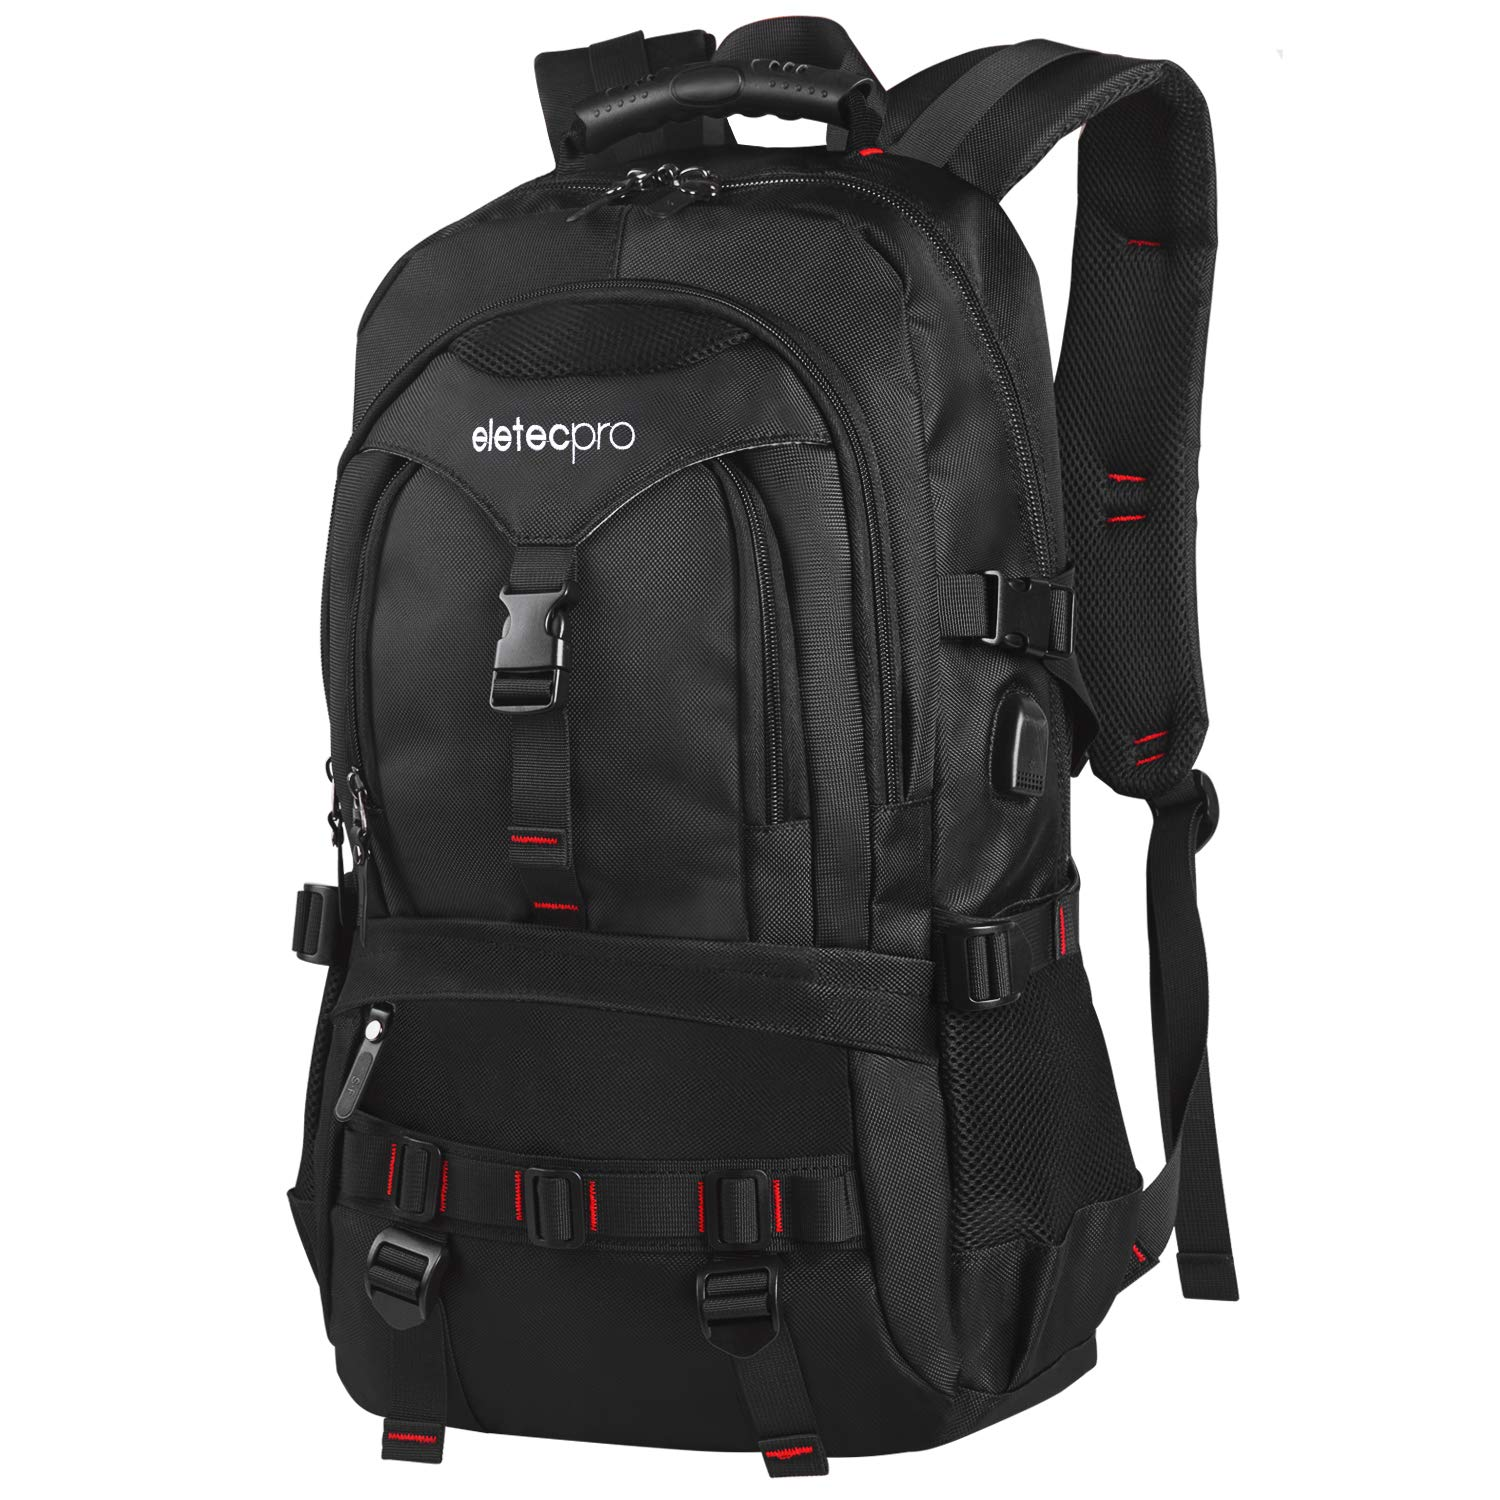 EletecPro Unisex 17.3 Inch Waterproof Laptop Backpack with USB Charging Port,Durable Travel Backpack with Contains Multi-Function Pockets for Women & Men ...